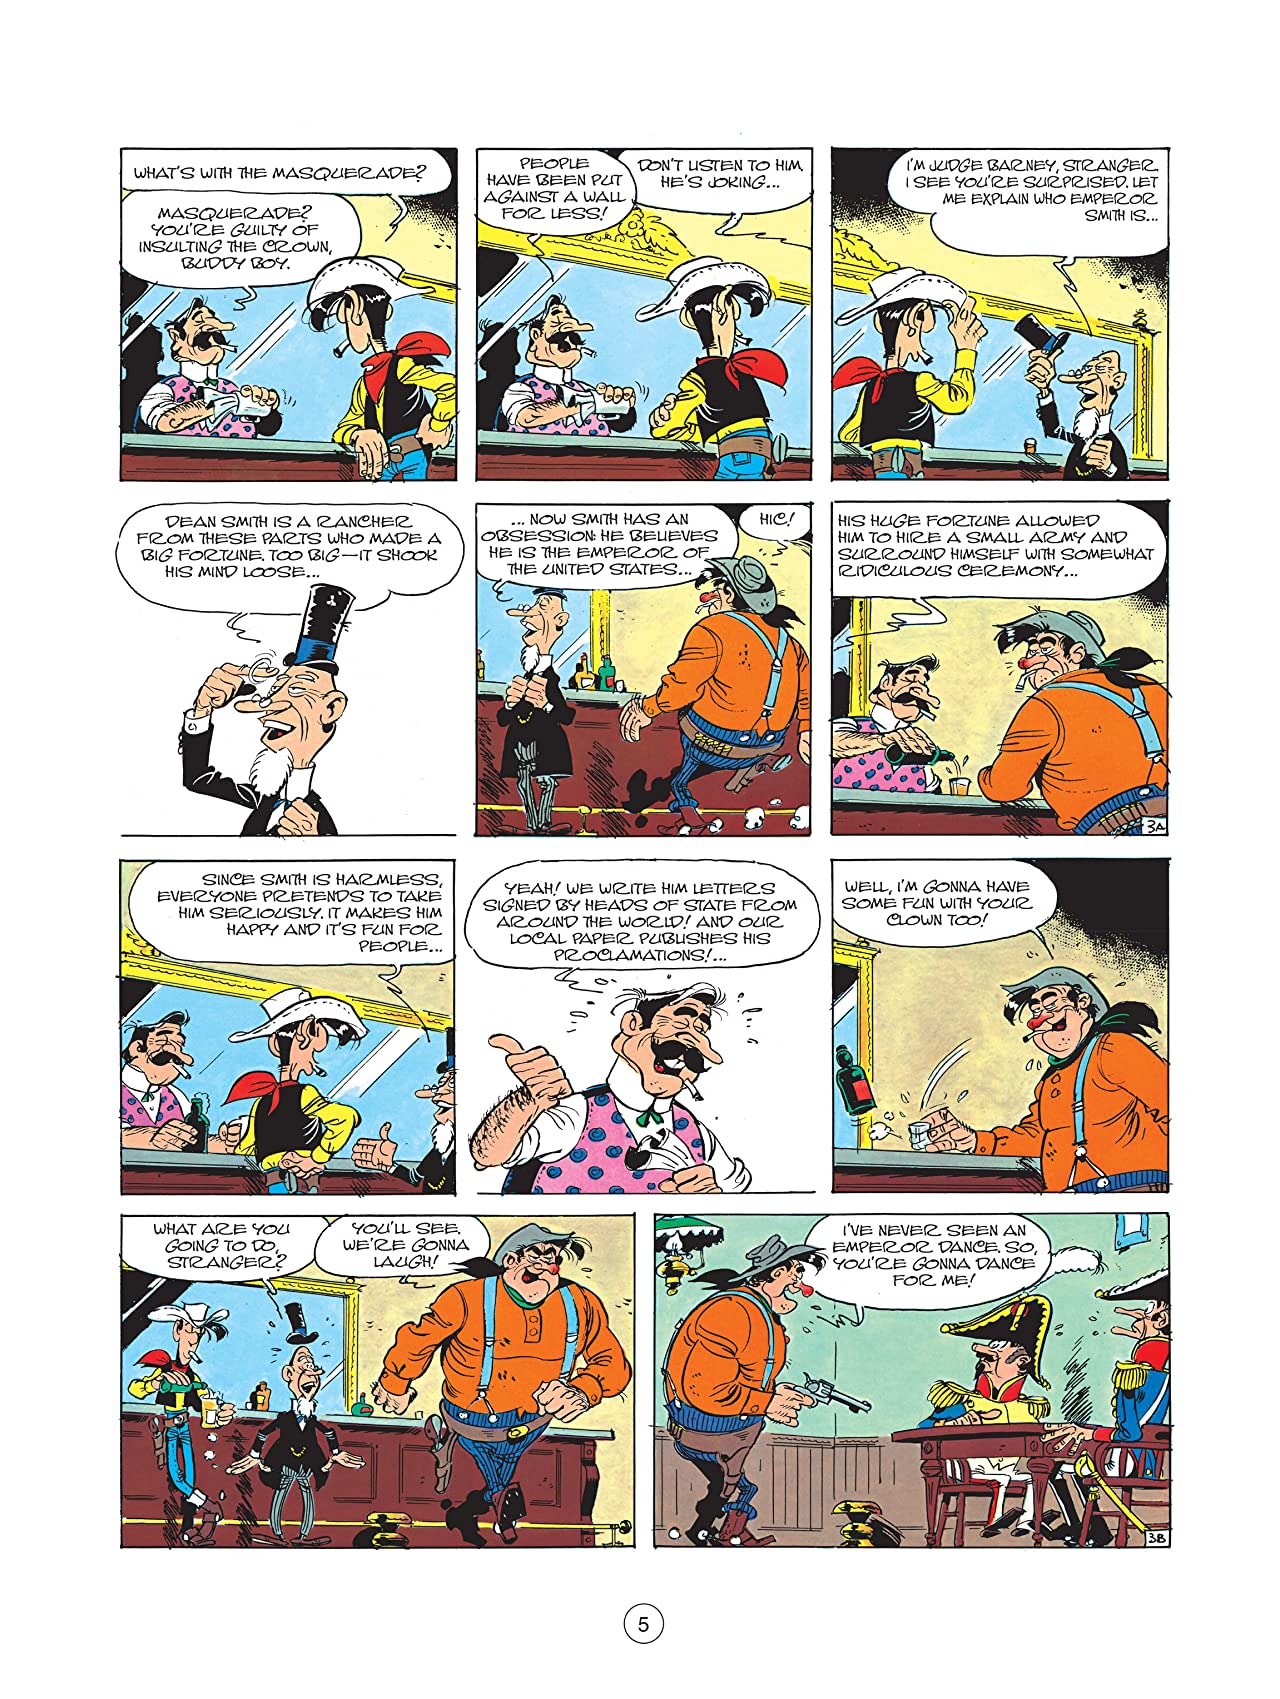 Lucky Luke Vol. 22: Emperor Smith